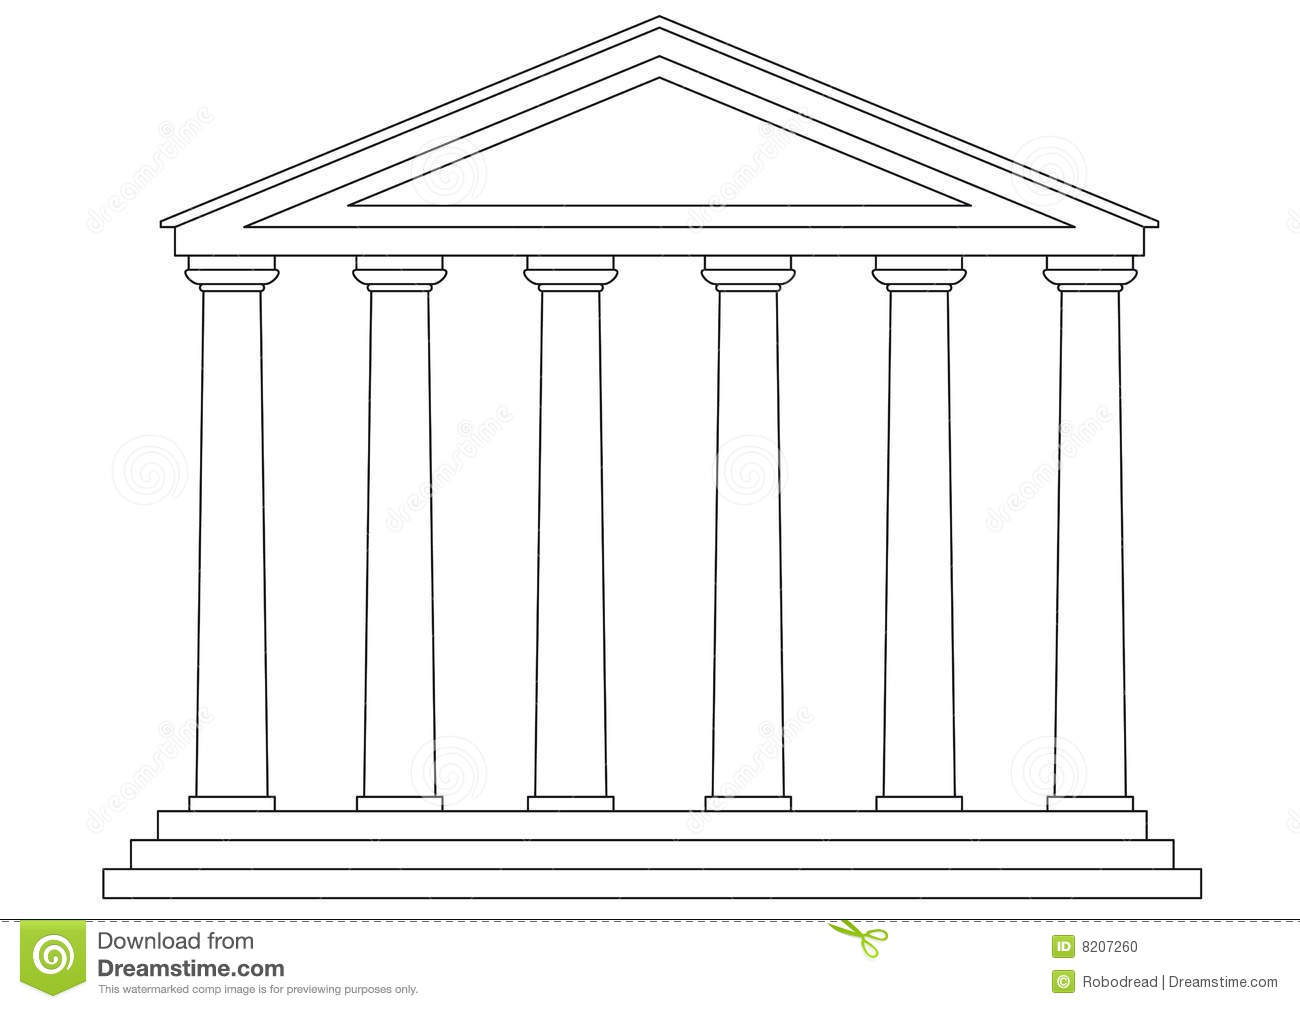 Greek temple clipart free image library download Greek temple clipart free - ClipartFest image library download